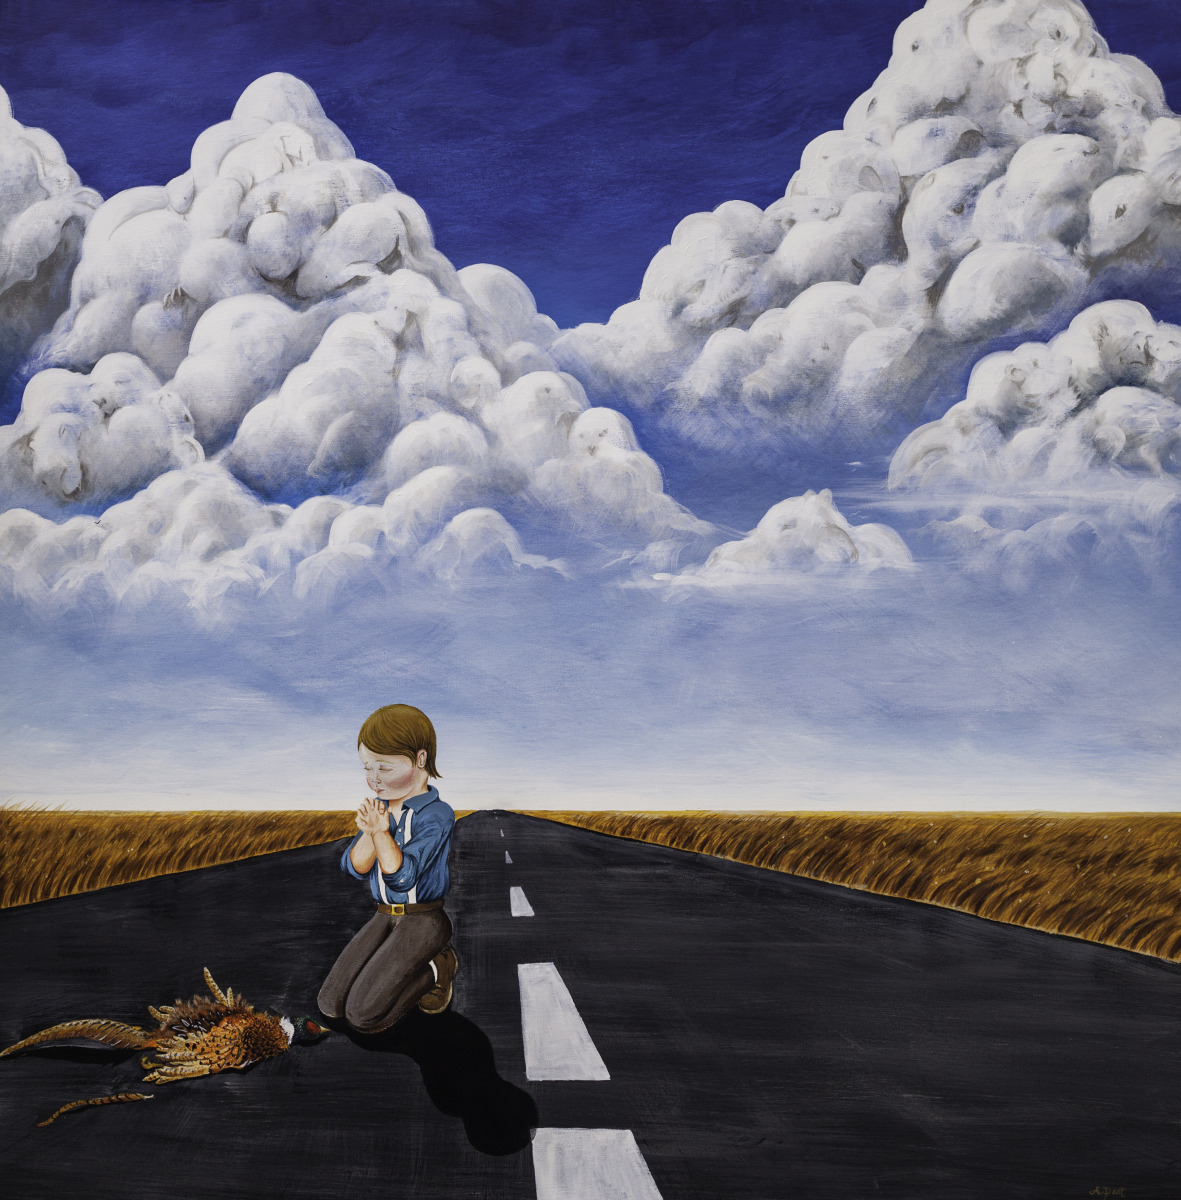 Adam Peot art painting of a young boy praying over  a dead pheasant, while in the clouds behind dozens of life forms emerge representing the continuity and interconnectedness of life.  (large view)